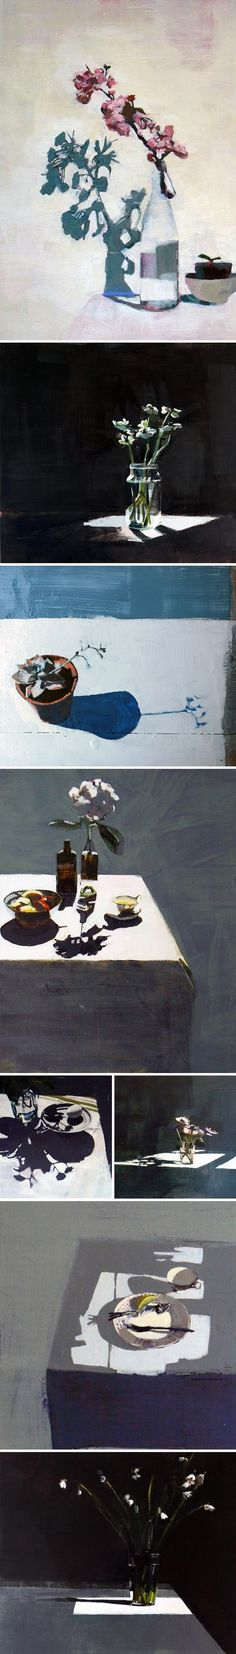 Gorgeous still life work from Susan Ashworth